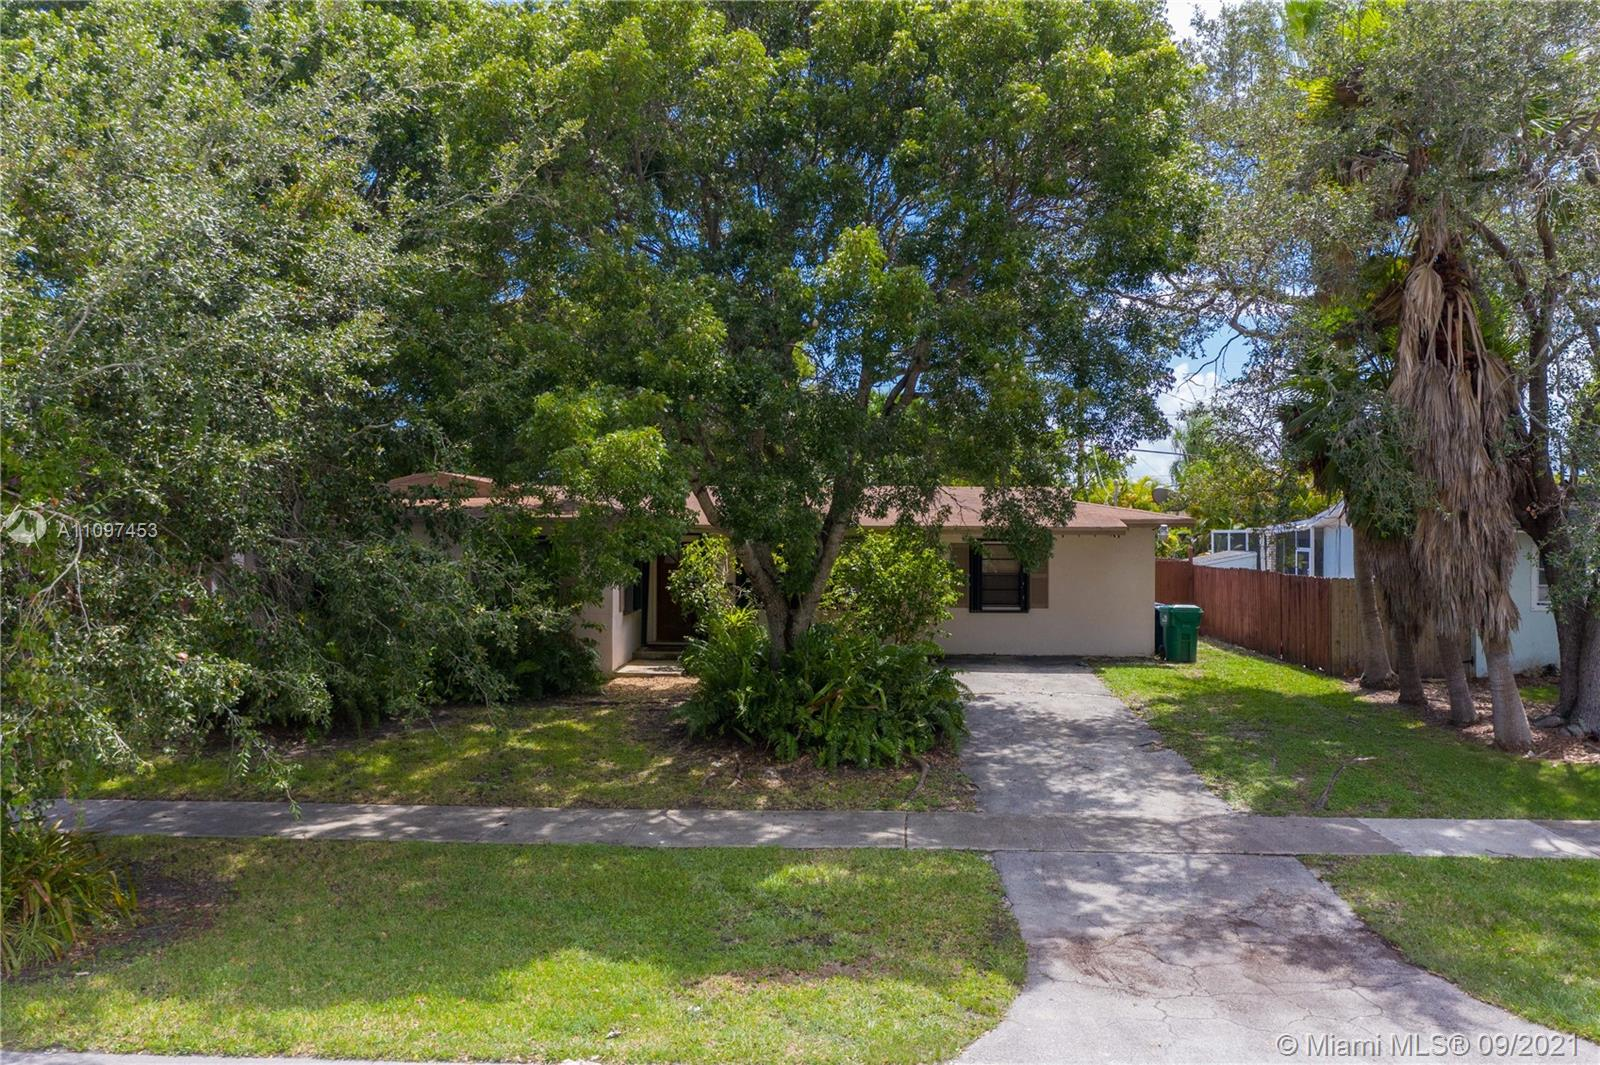 Single Family Home,For Sale,8780 SW 200th St, Cutler Bay, Florida 33157,Brickell,realty,broker,condos near me